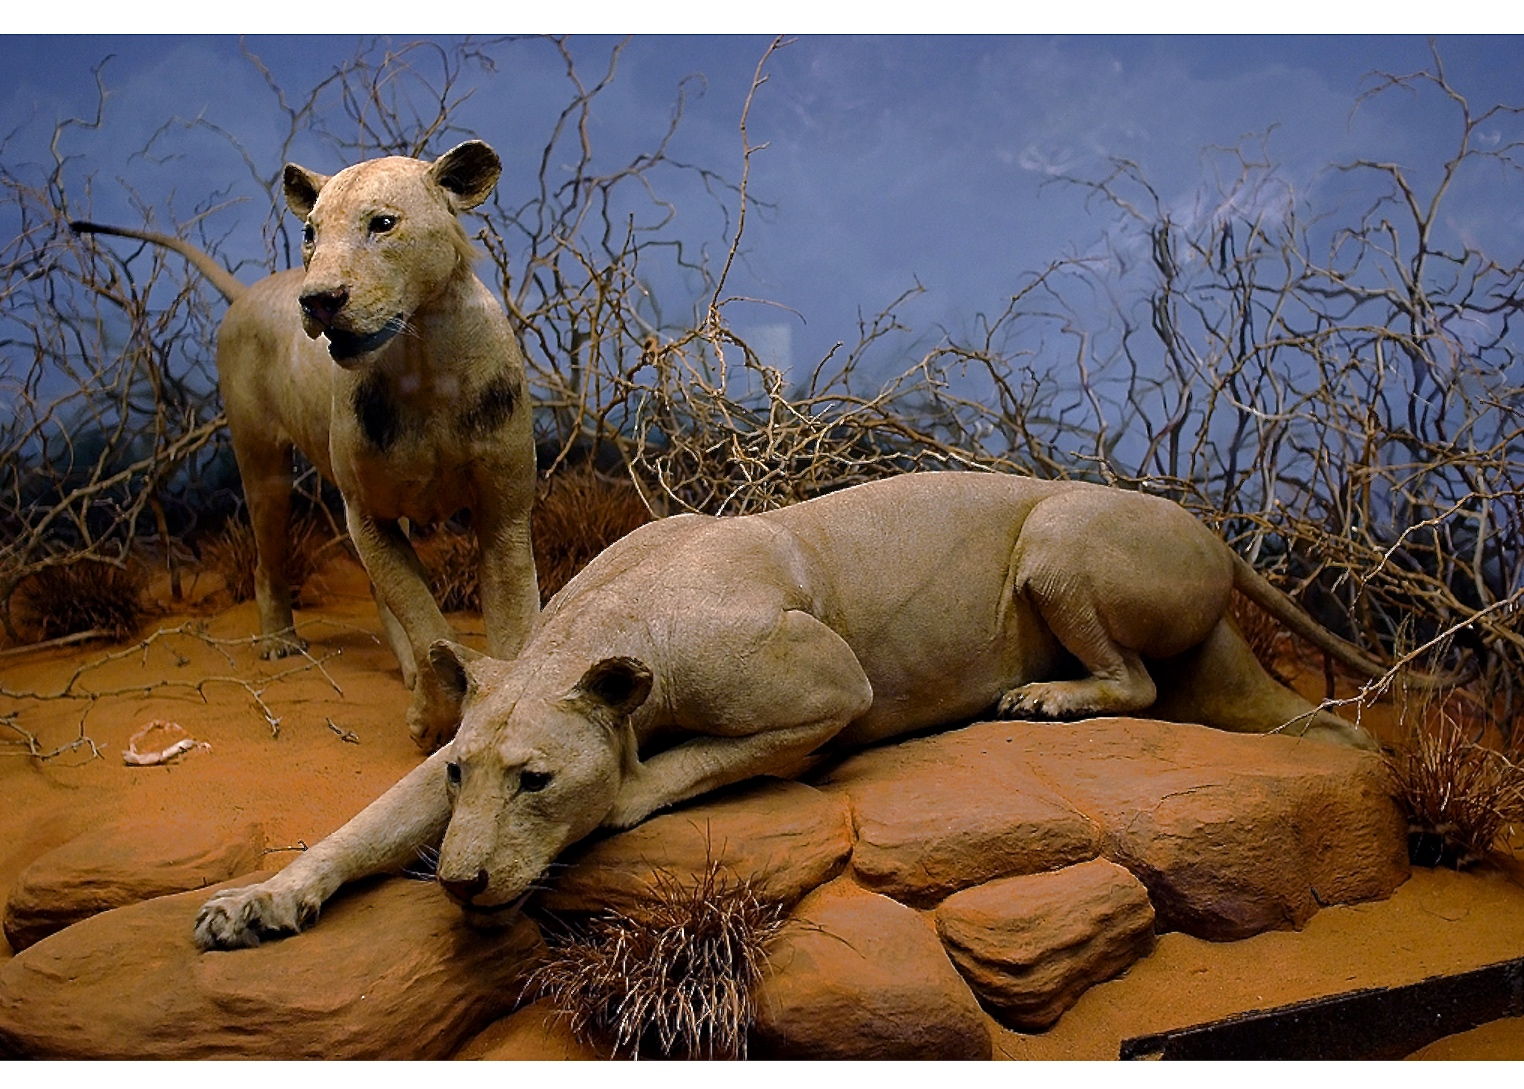 ©Field Museum, Chicago. The Tsavo man-eating lions (1898).